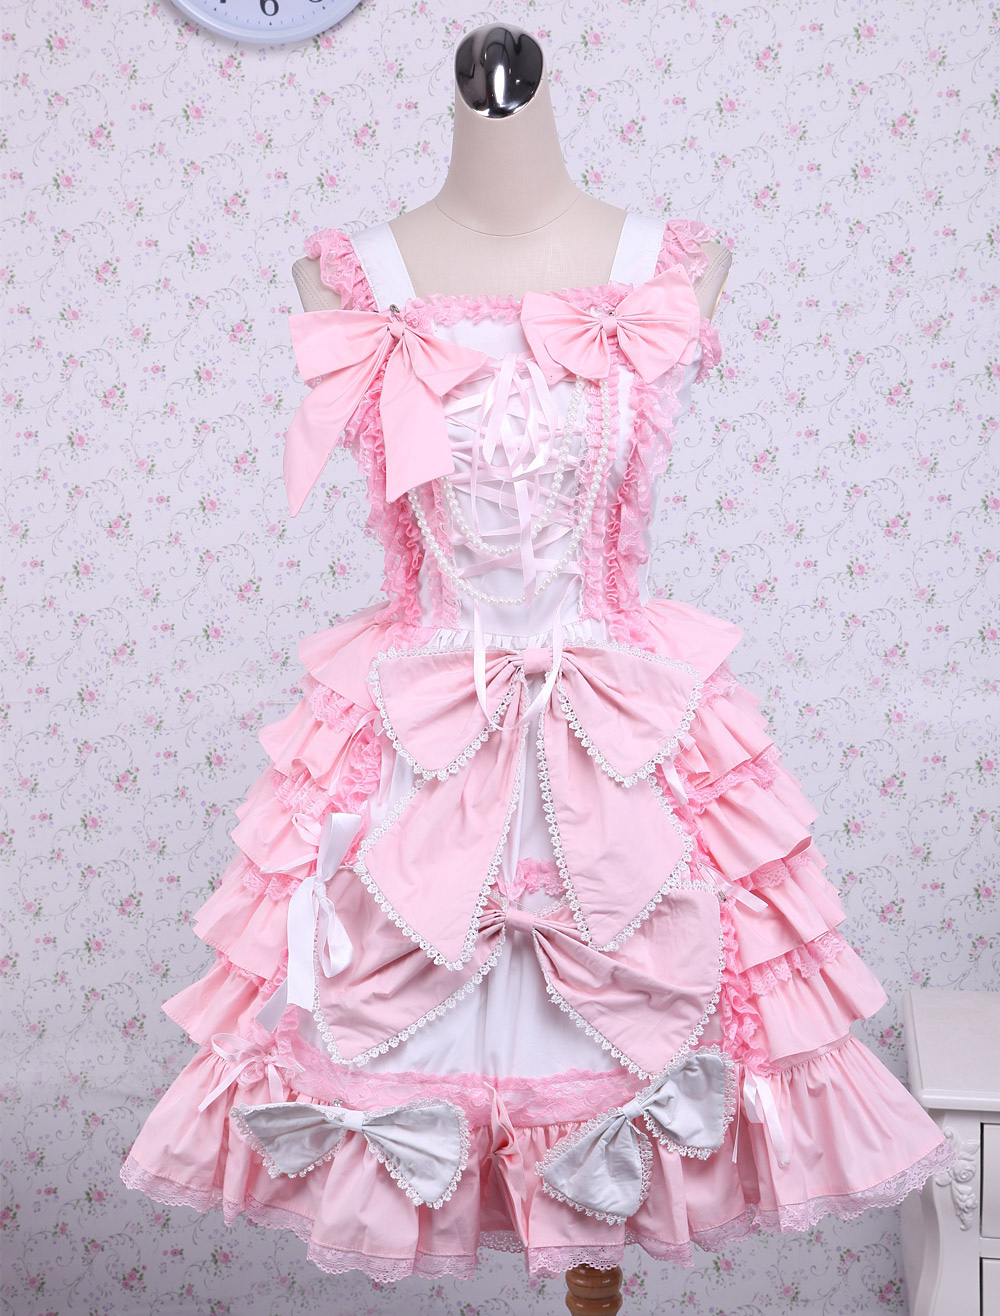 Buy Sweet Pink Cotton Loltia Jumper Dress Bows Layers Ruffles for $84.59 in Milanoo store